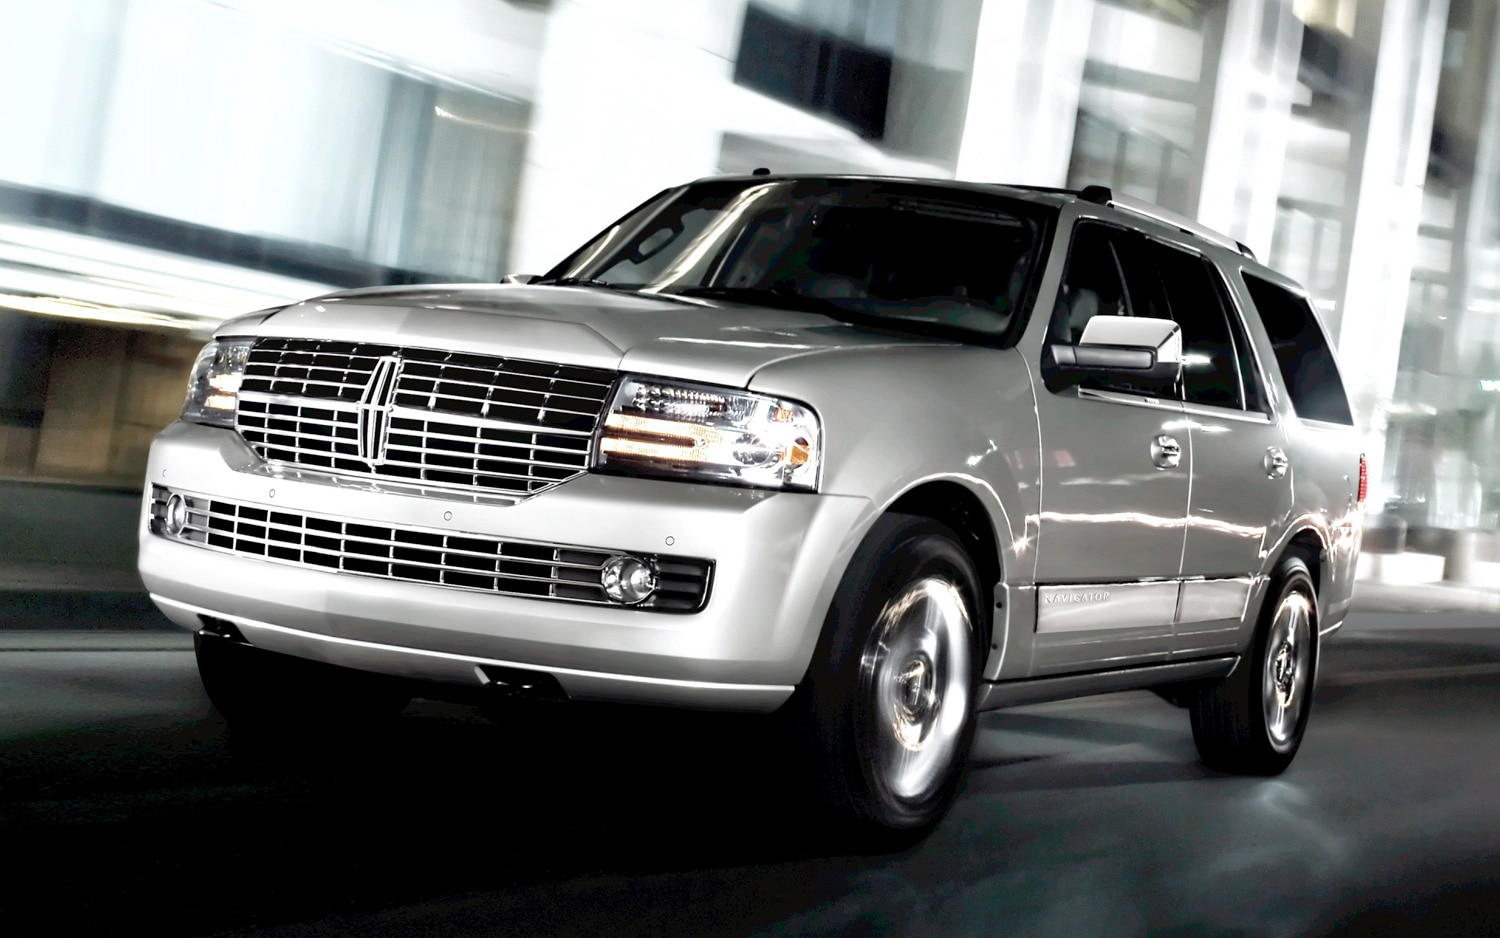 2012 Lincoln Navigator Photo Gallery